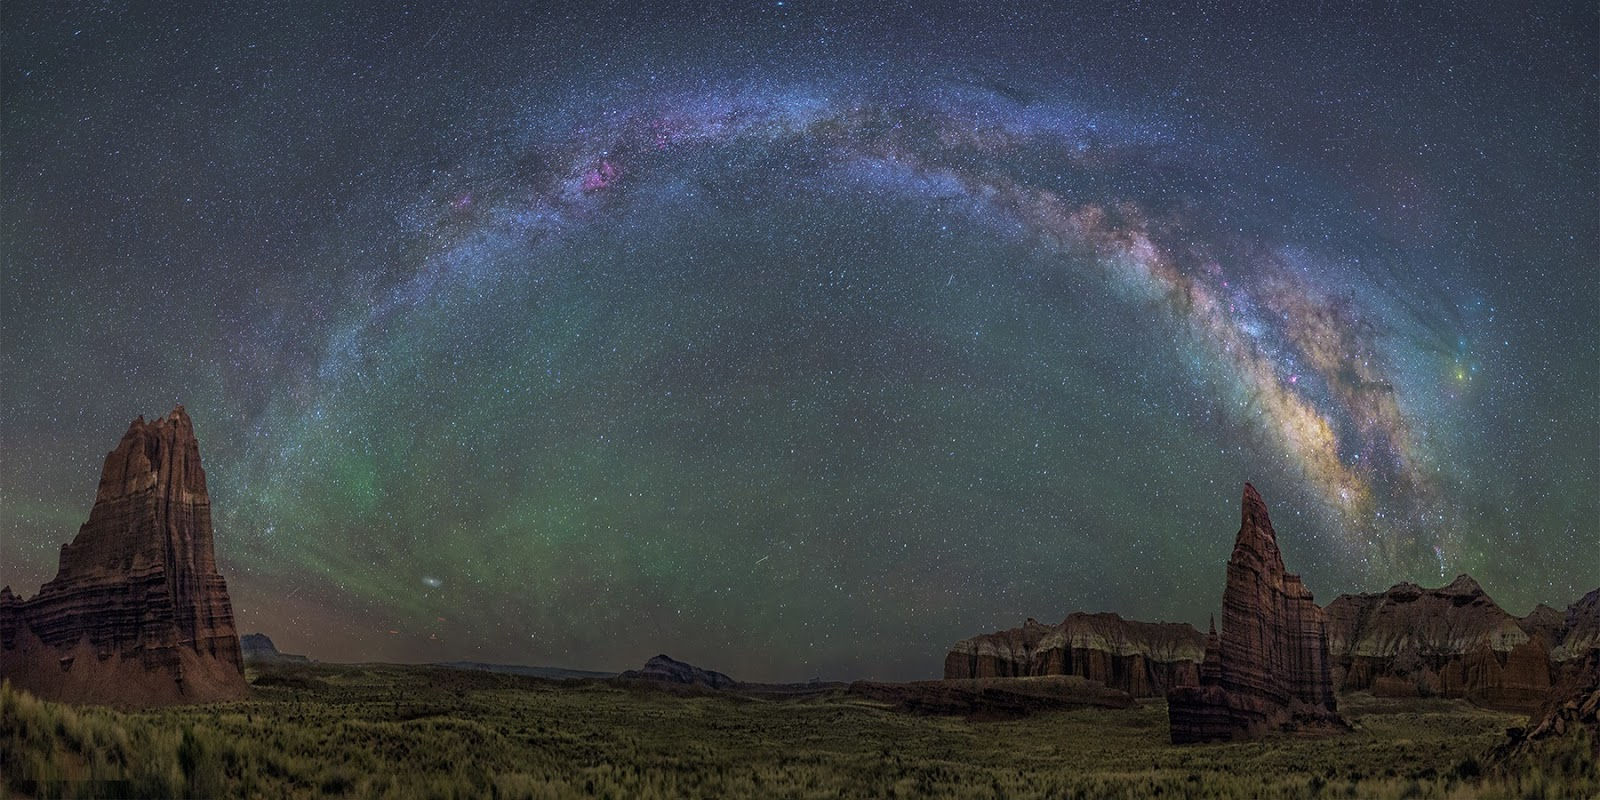 The Milky Way Galaxy over Capitol Reef National Park